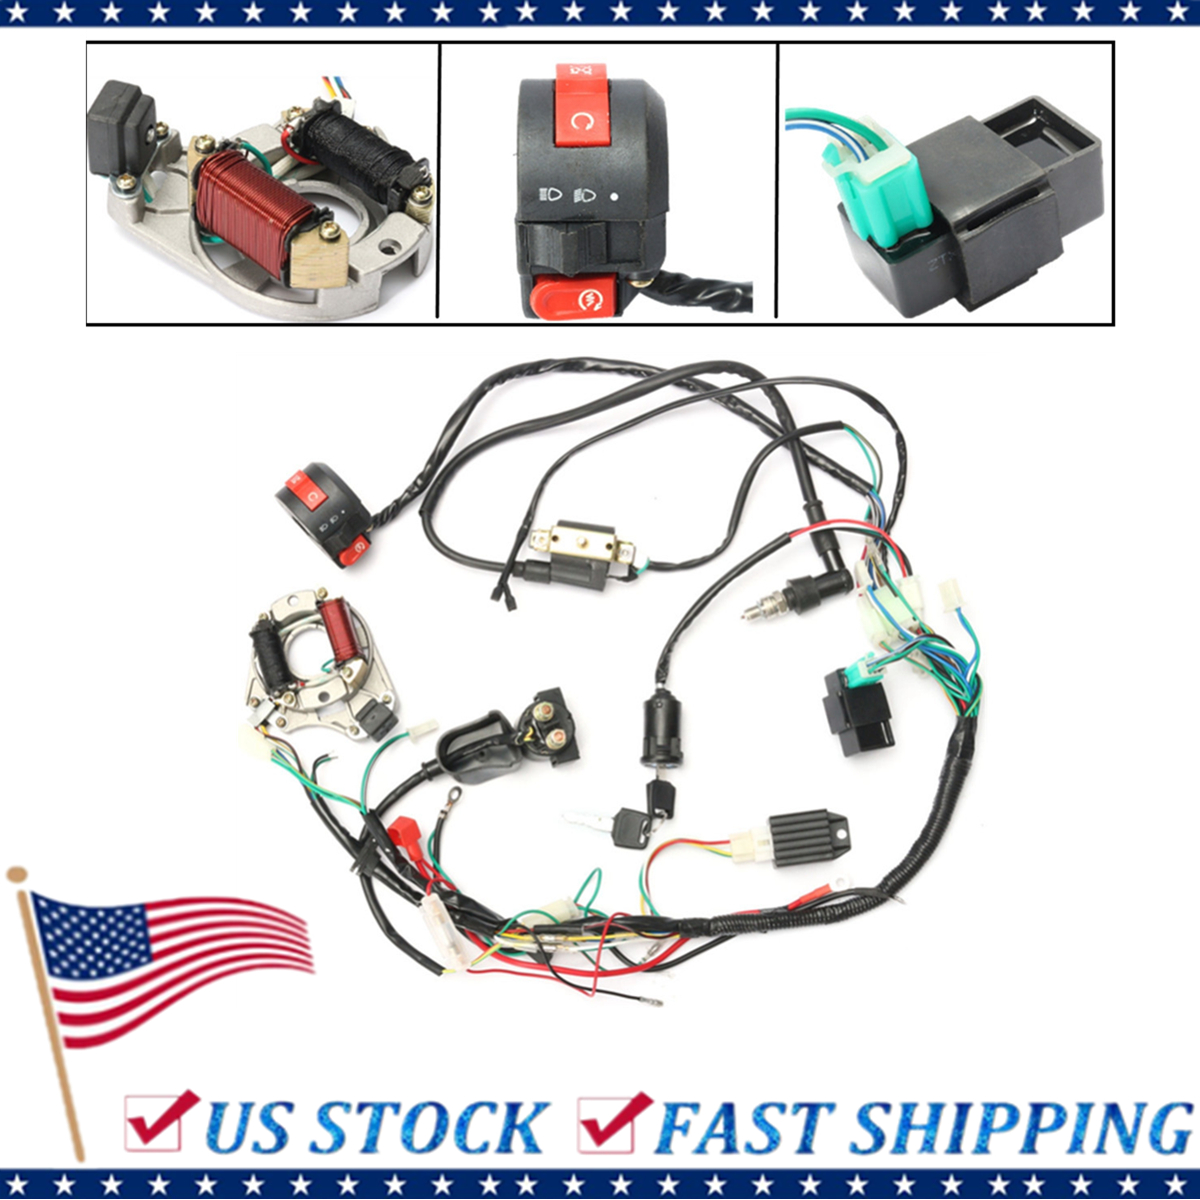 hight resolution of 1 set 50 70 90 110cc cdi wire harness assembly wiring kit atv electric start quad only fit for 2 stroke walmart com